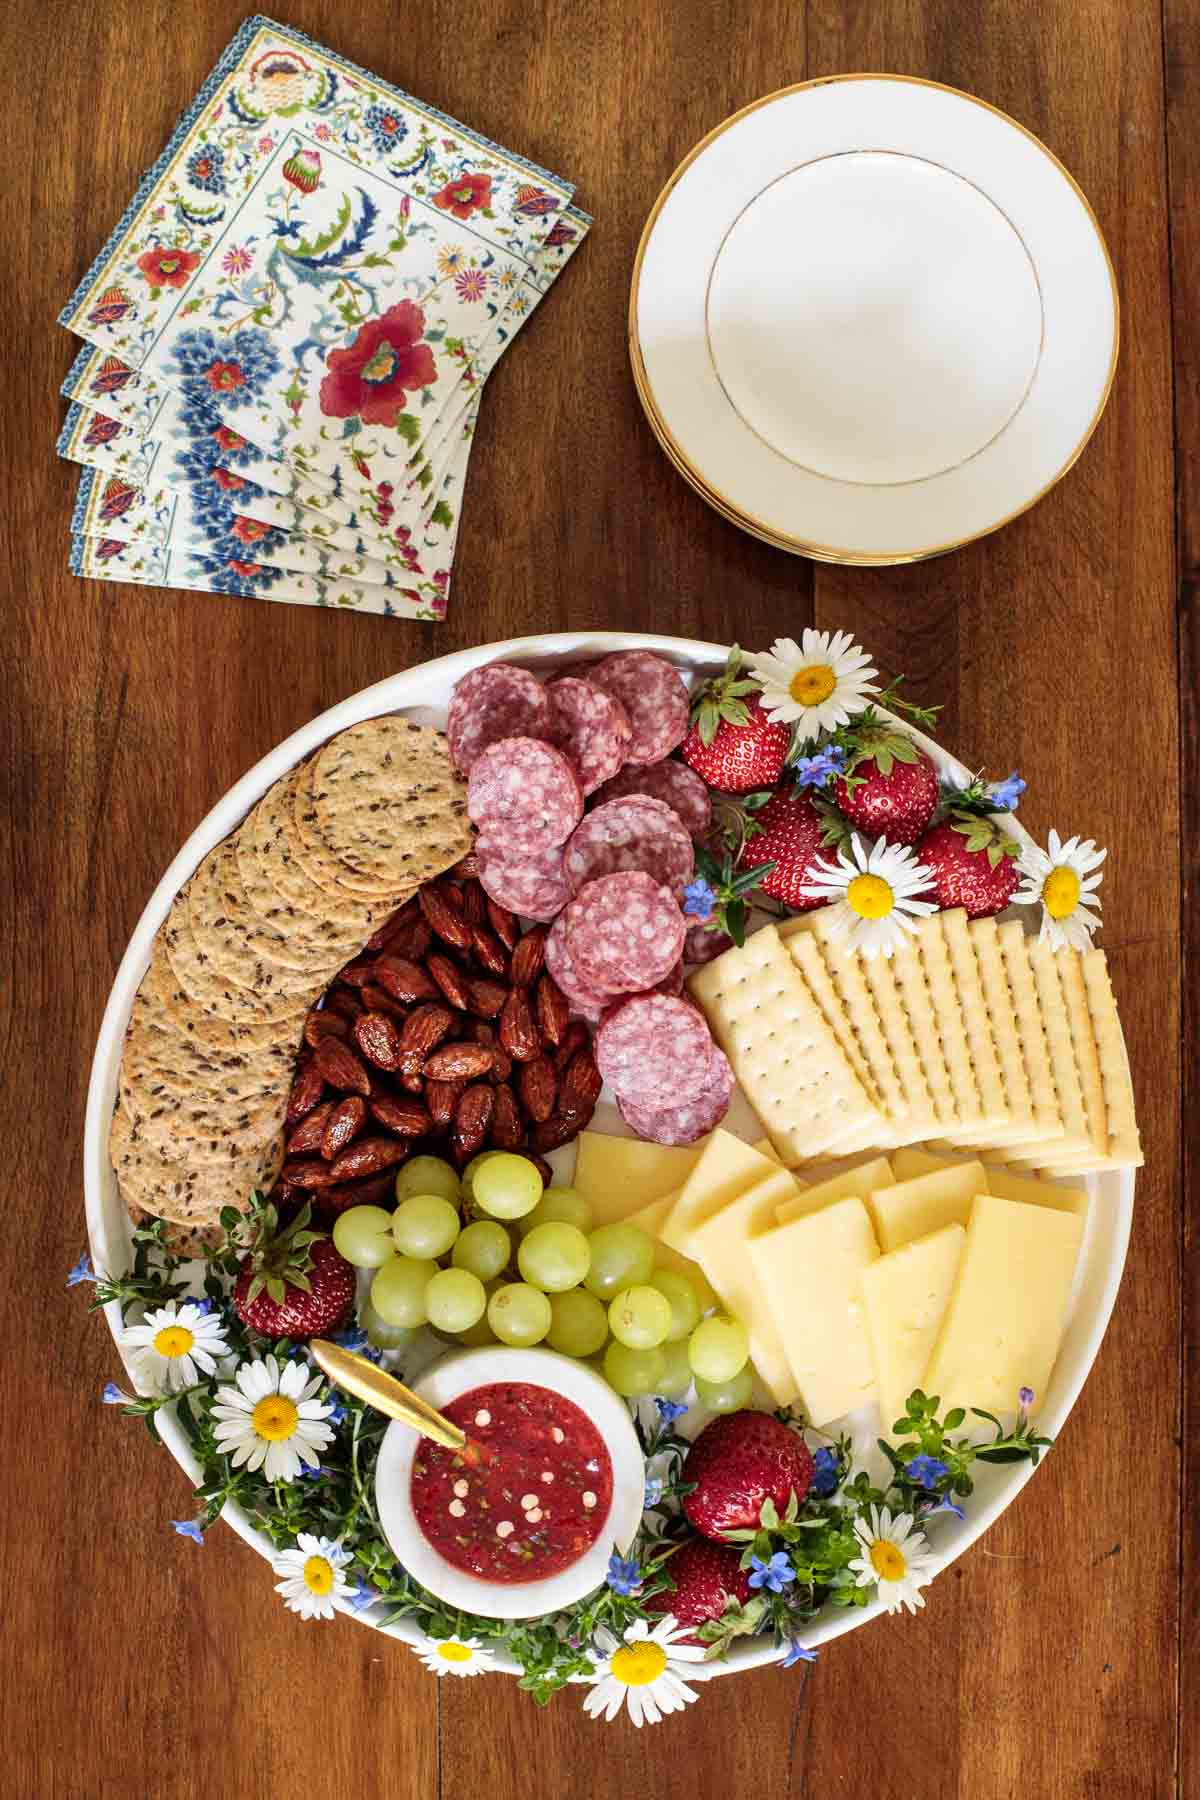 Overhead photo of an appetizer tray featuring Easy Strawberry Jalapeño Jam surrounded by appetizer snacks and decorative flowers on a wood table.